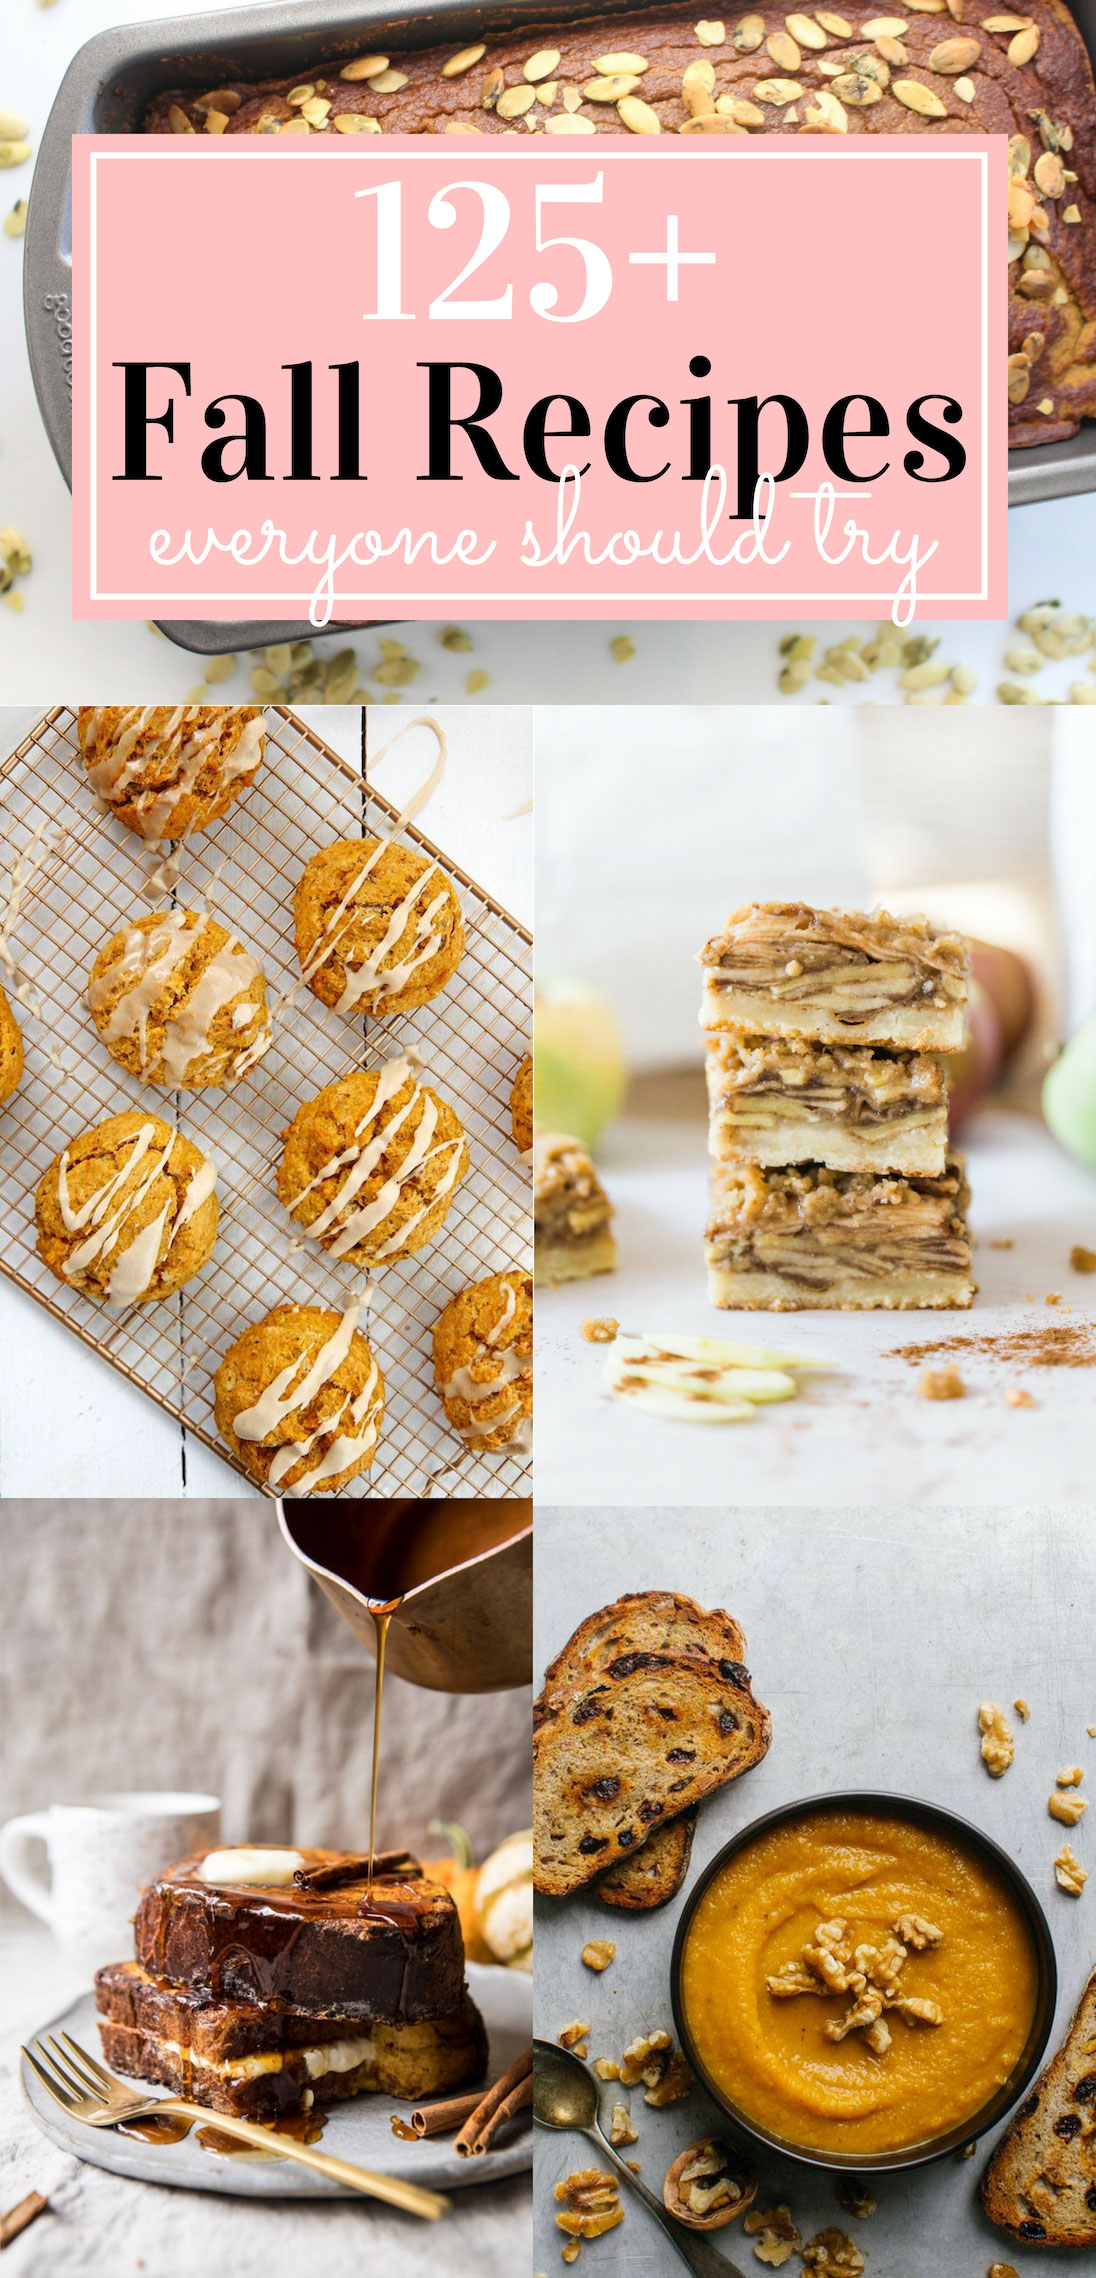 125+ incredible fall recipes that everyone should try. Click through for the recipes. | glitterinc.com | @glitterinc